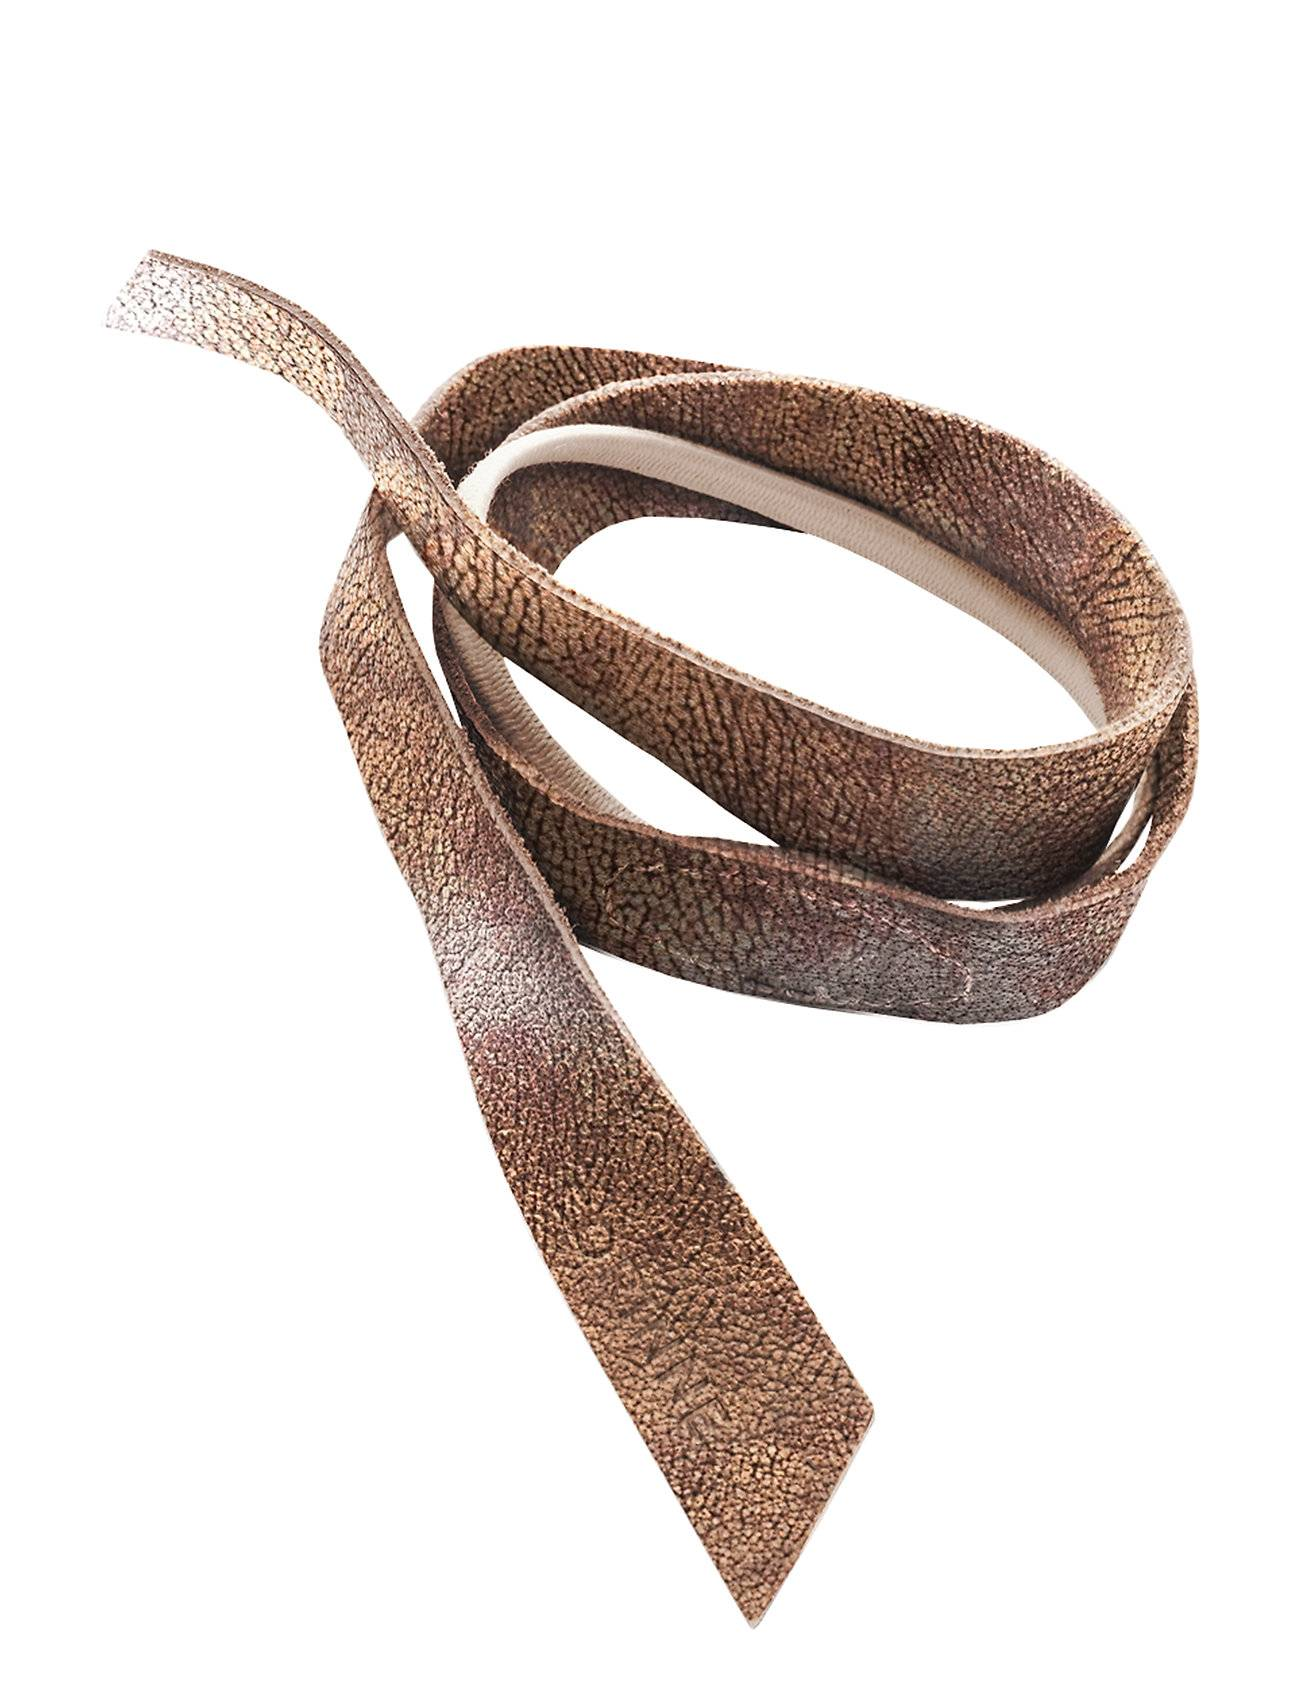 Image of Corinne Leather Band Short Layer Accessories Hair Hair Accessories Harmaa Corinne